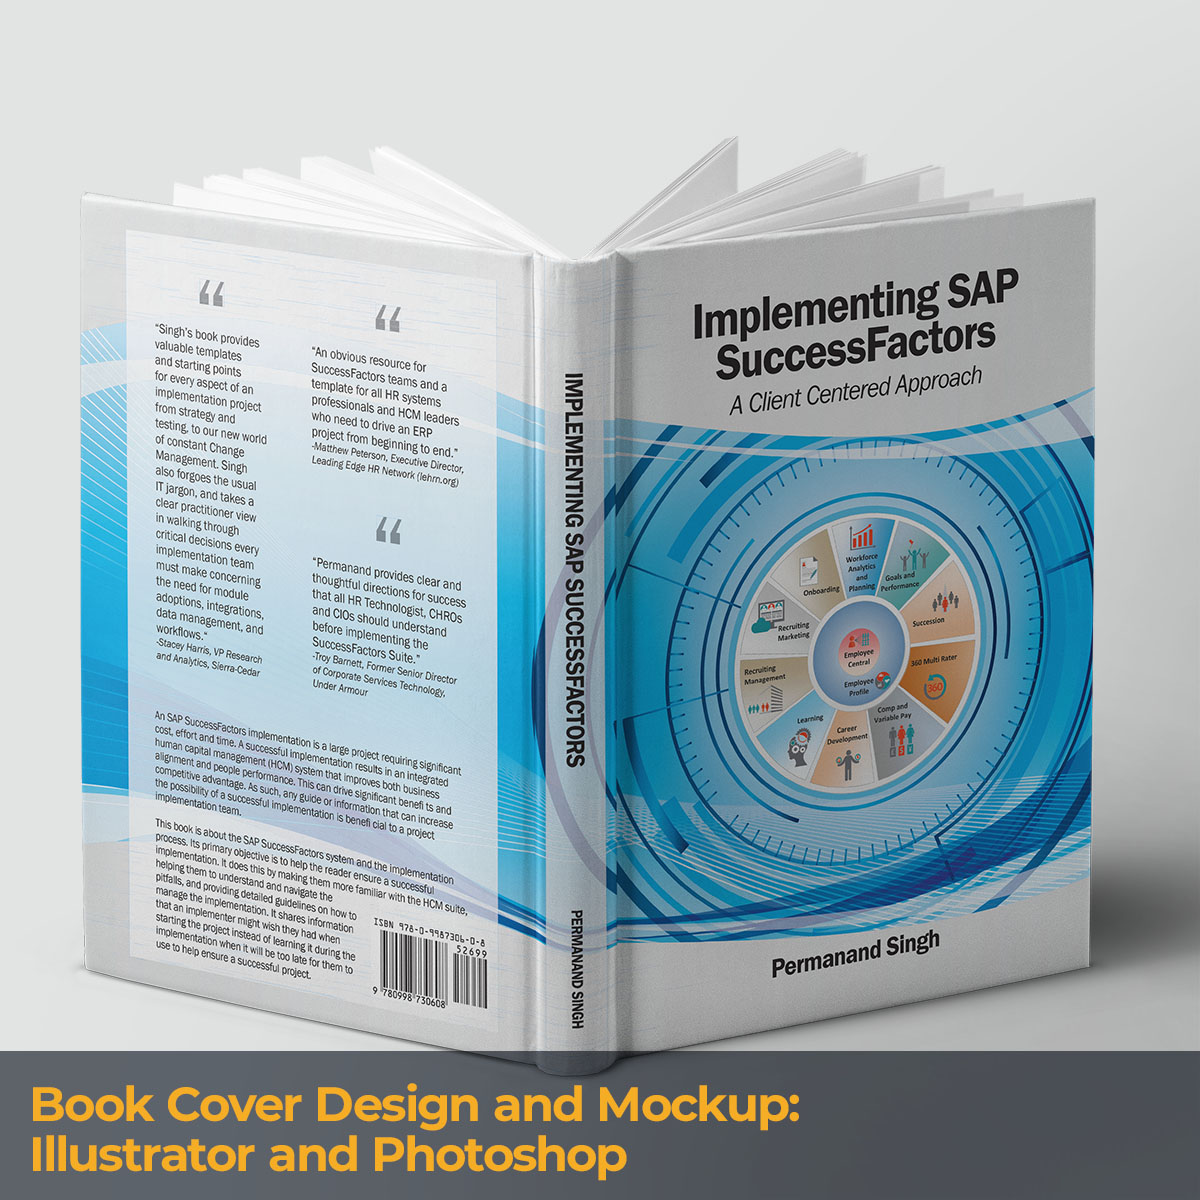 Book Cover Design and Mockup